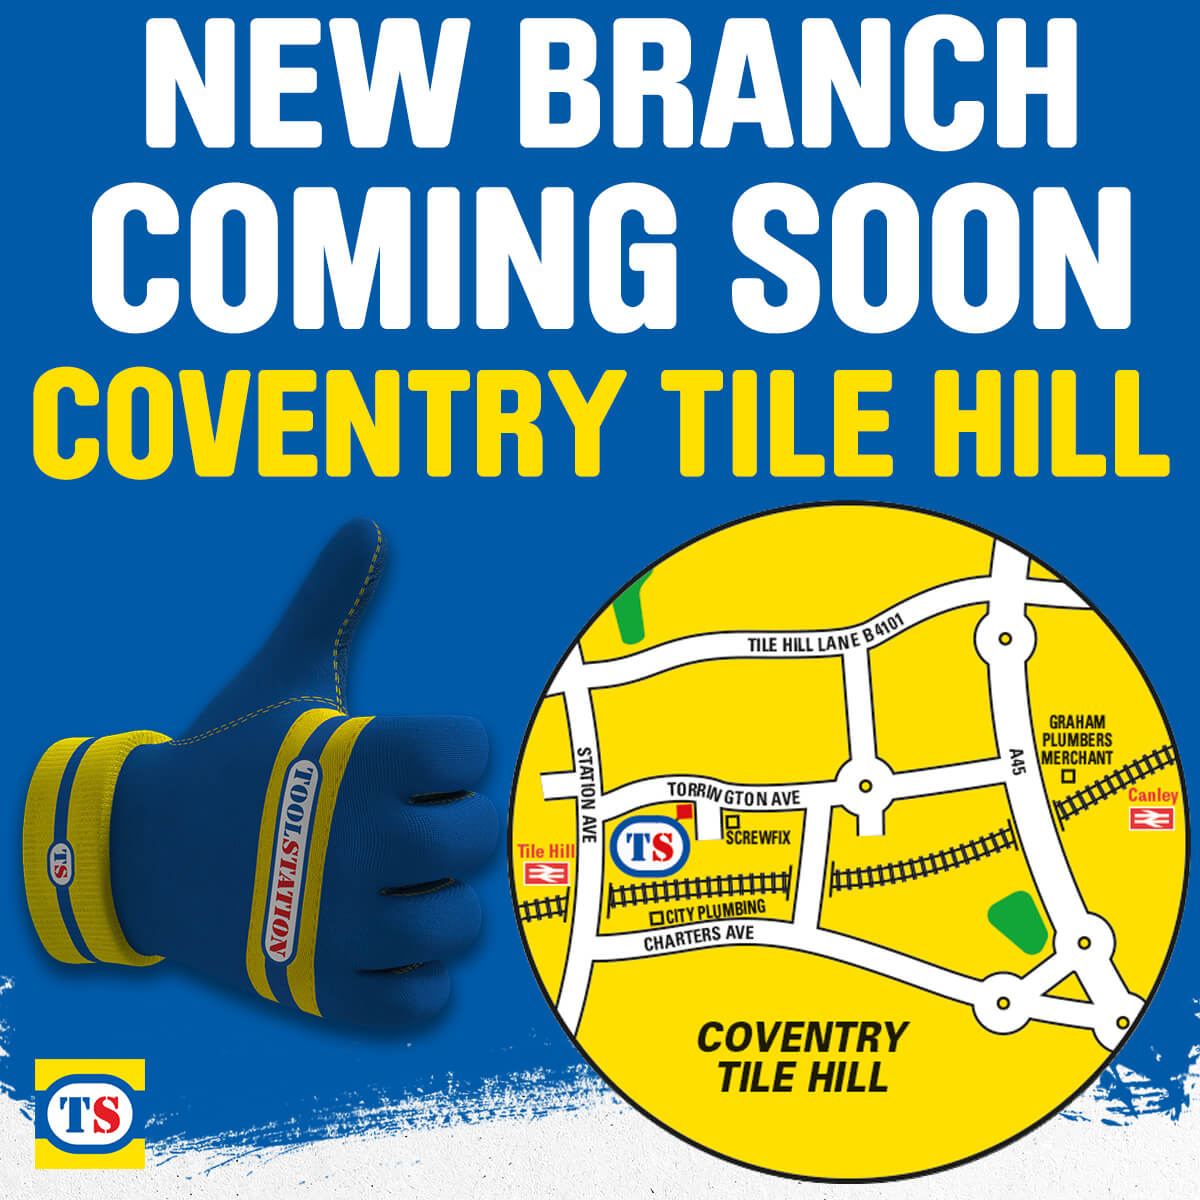 Coventry Tile Hill Toolstation Coming Soon